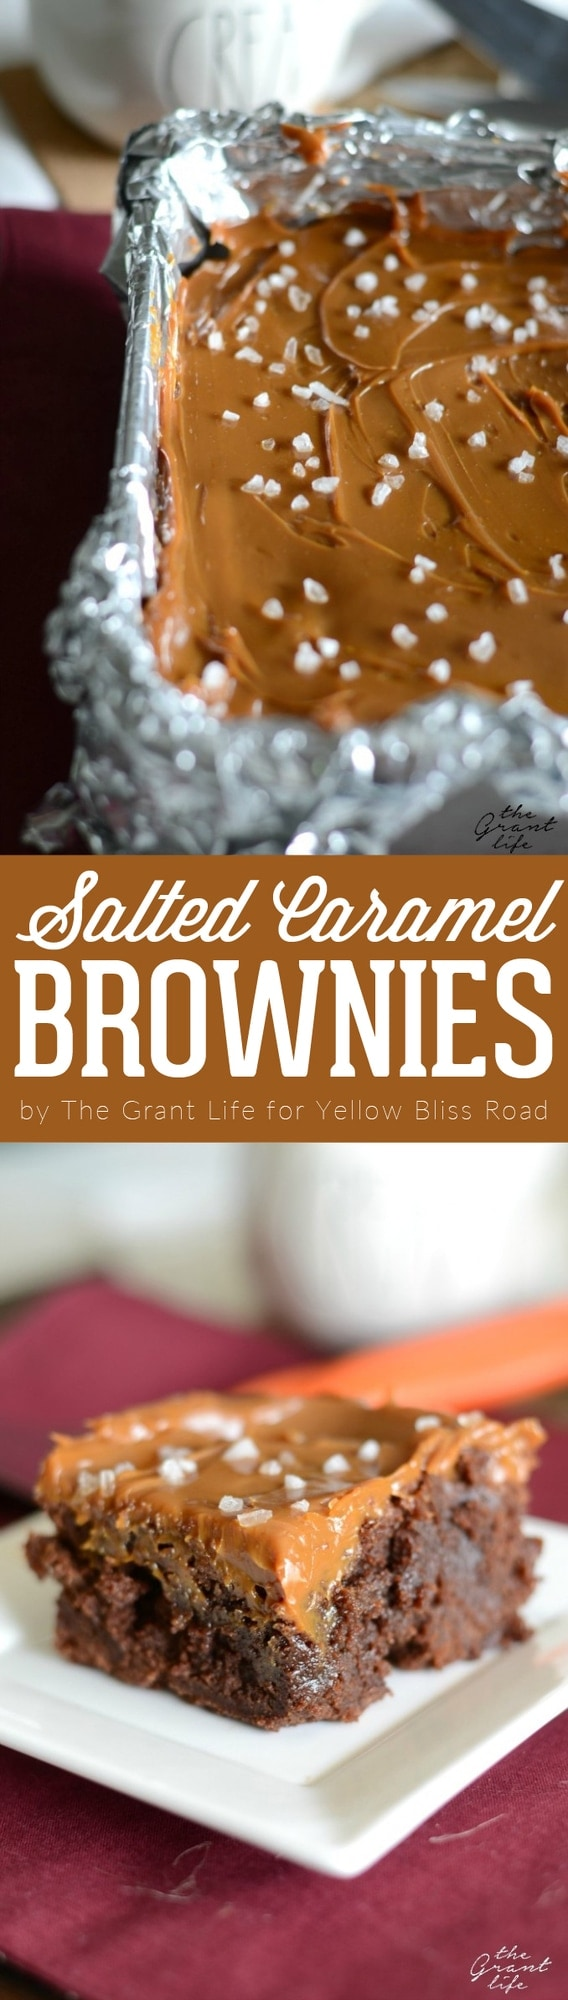 Decadent Salted Caramel Brownies are the perfect dessert recipe for salted caramel lovers - Thick, chewy brownies slathered with creamy salted caramel